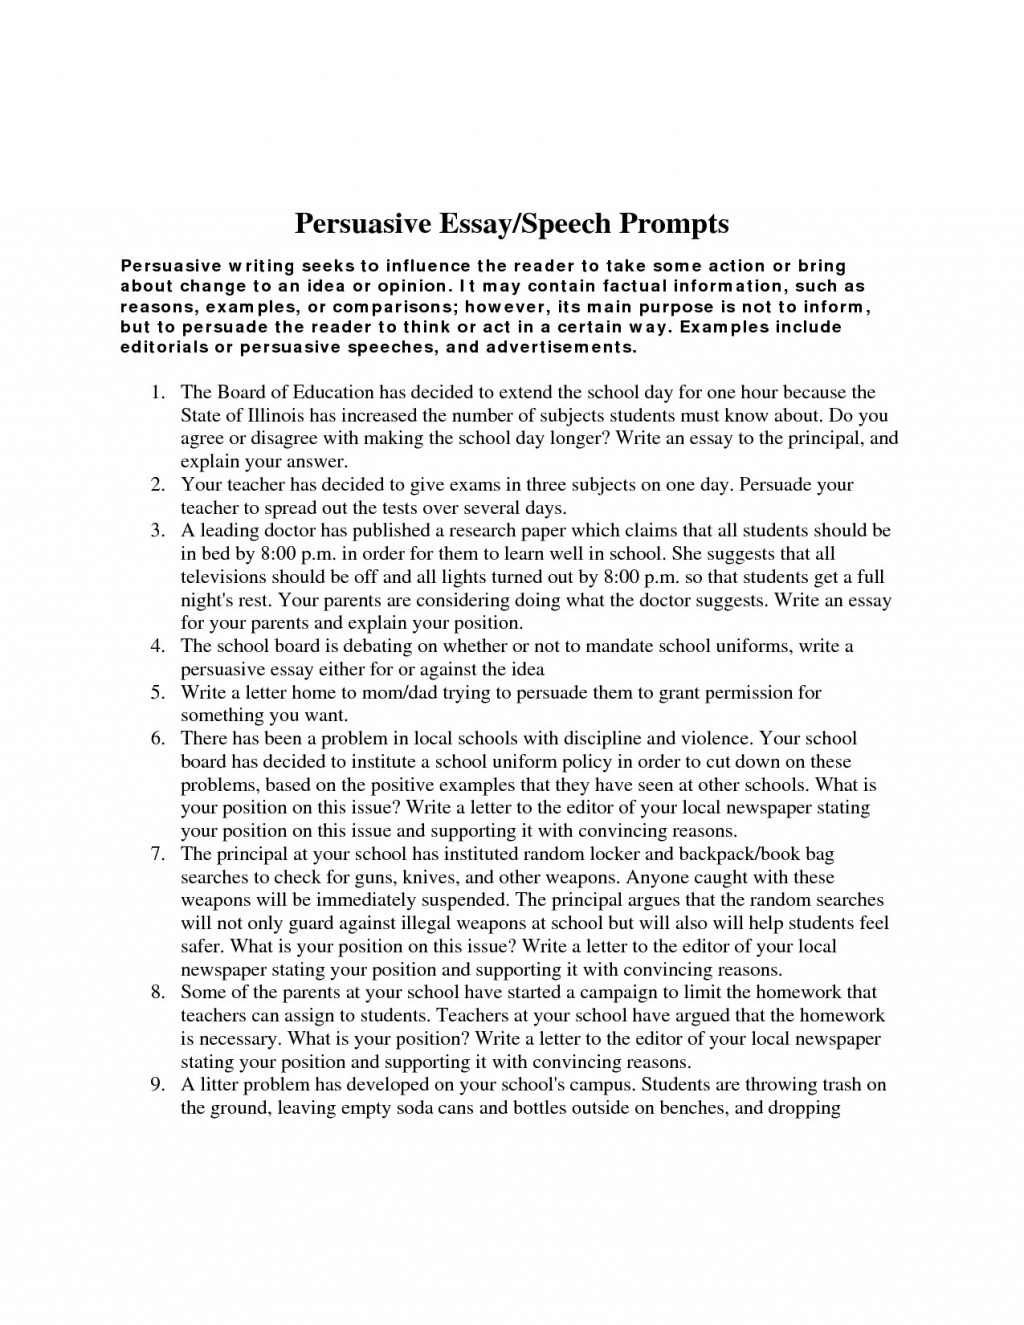 004 Persuasive Essay Topics For Middle School Example Imposing Speech High Students Interest Pdf Prompts Large